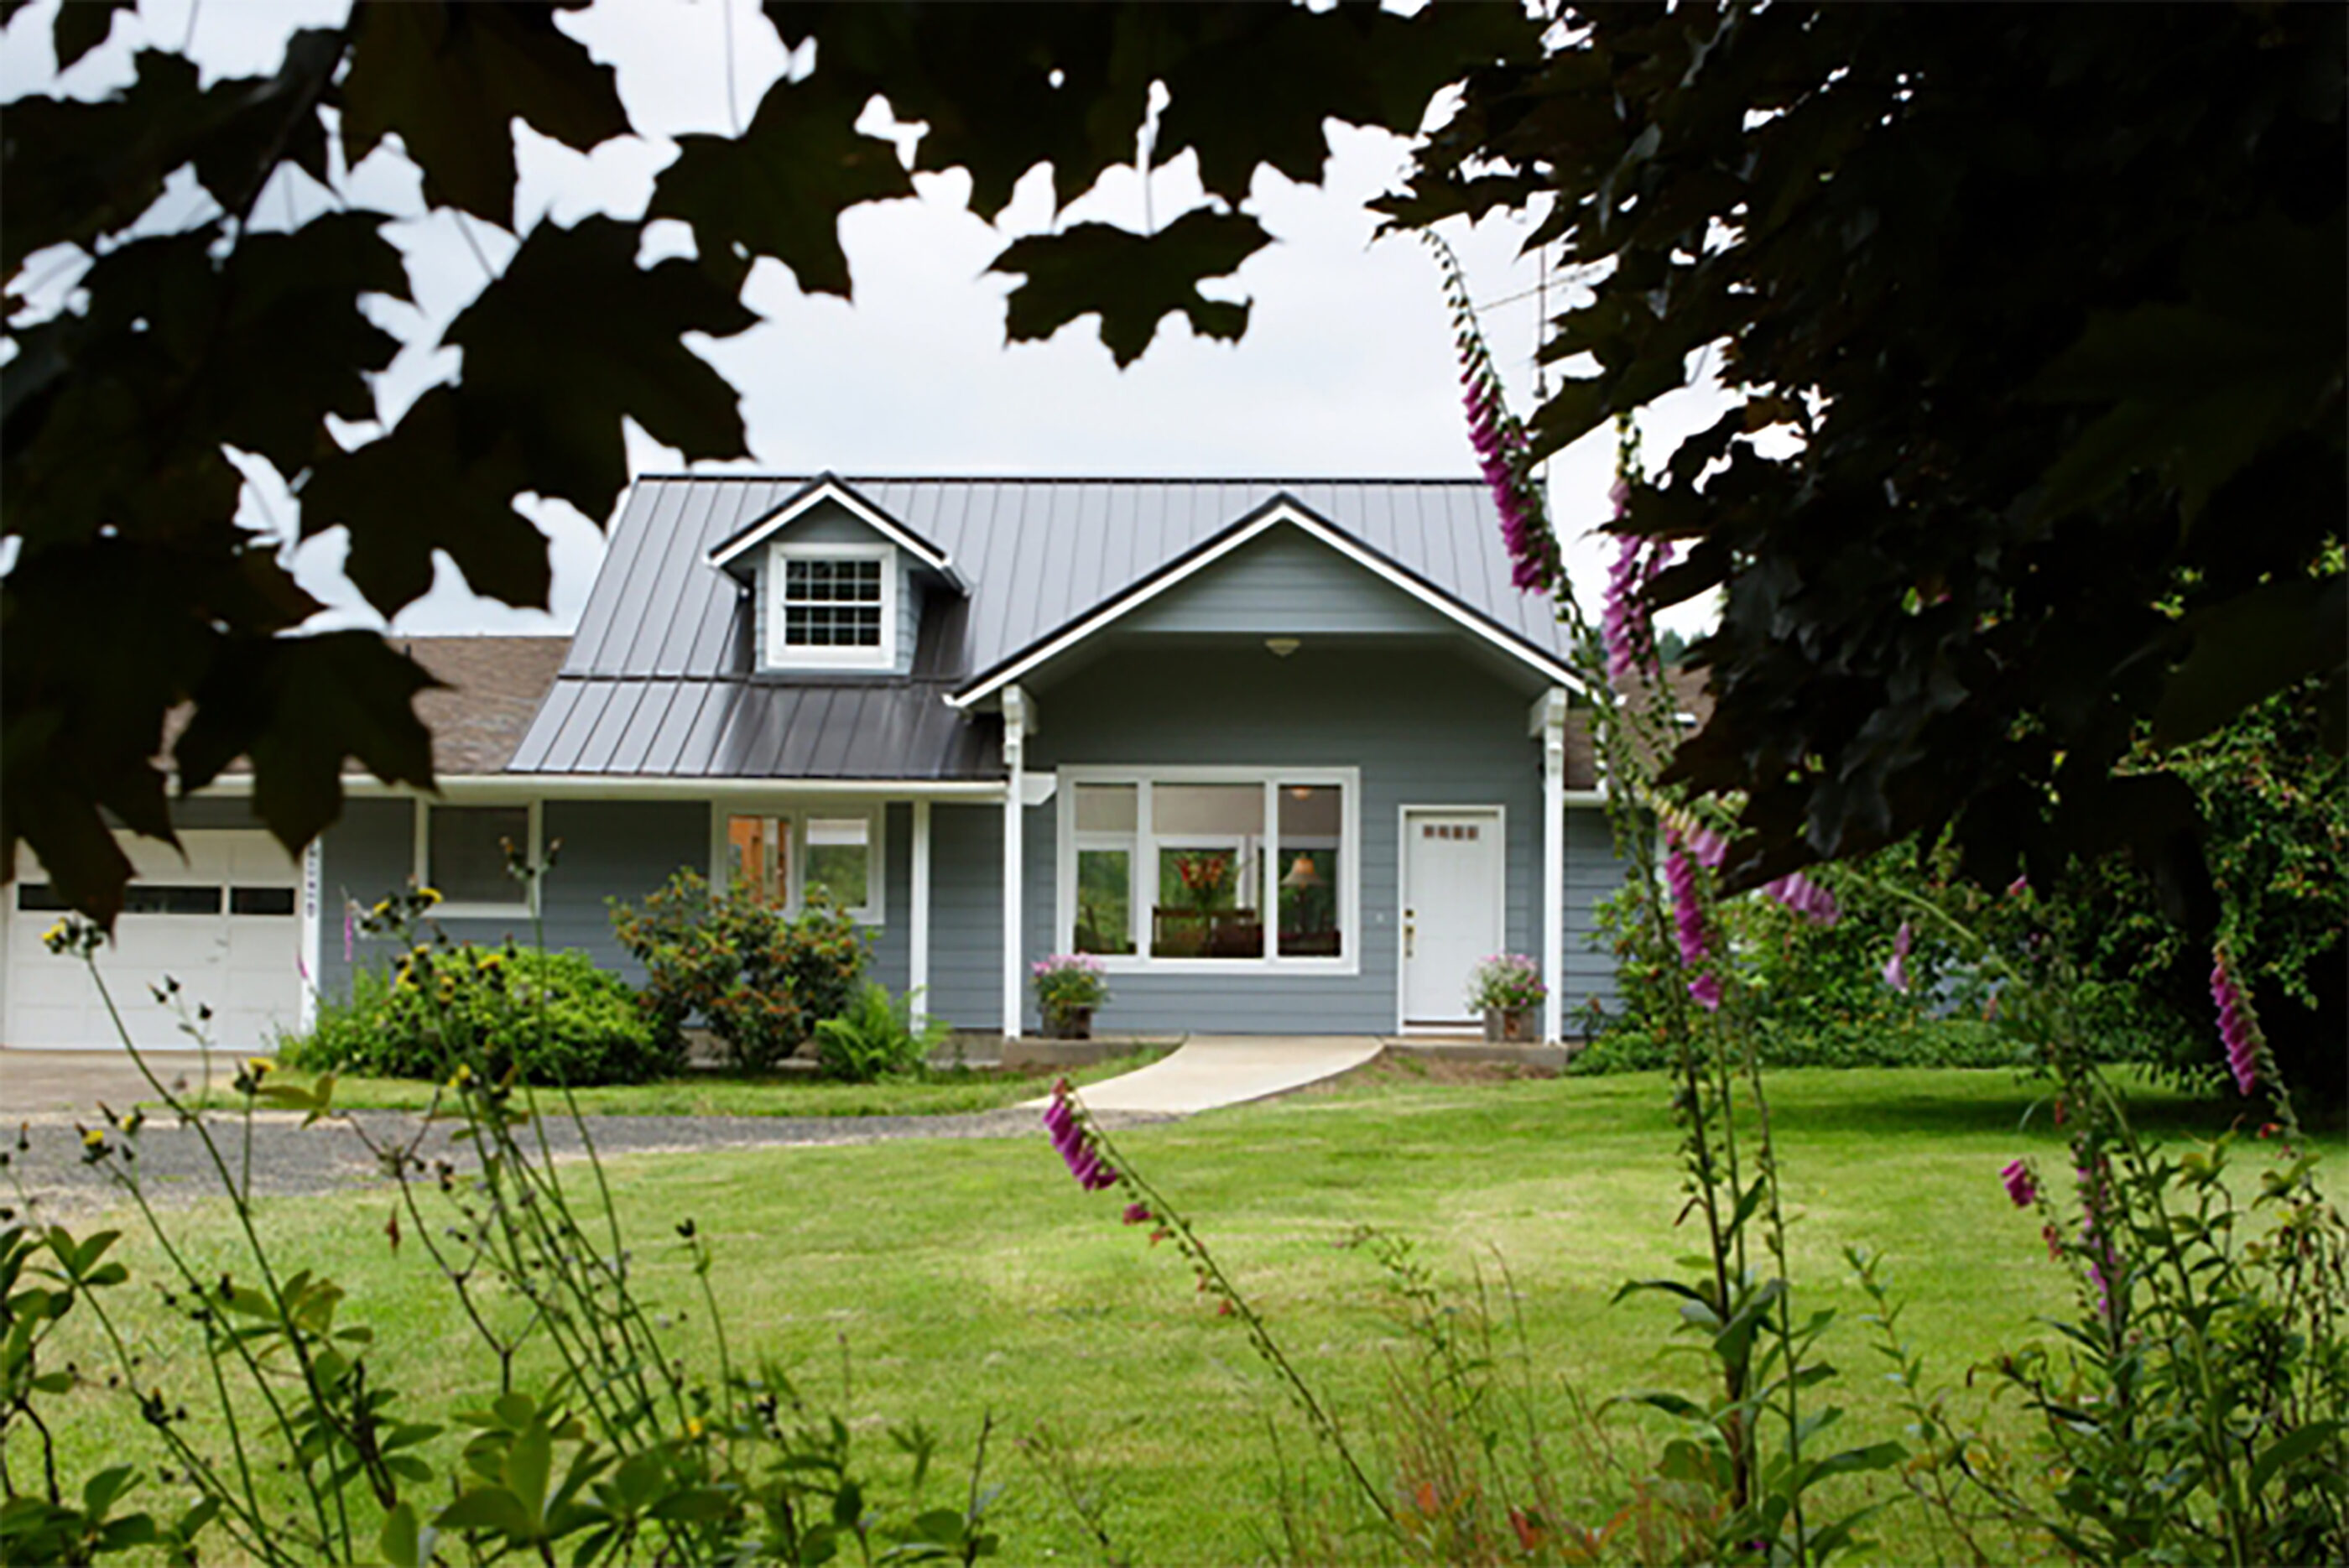 The change to the roofline and the addition of a gable over the front door gives the home's exterior more presence .